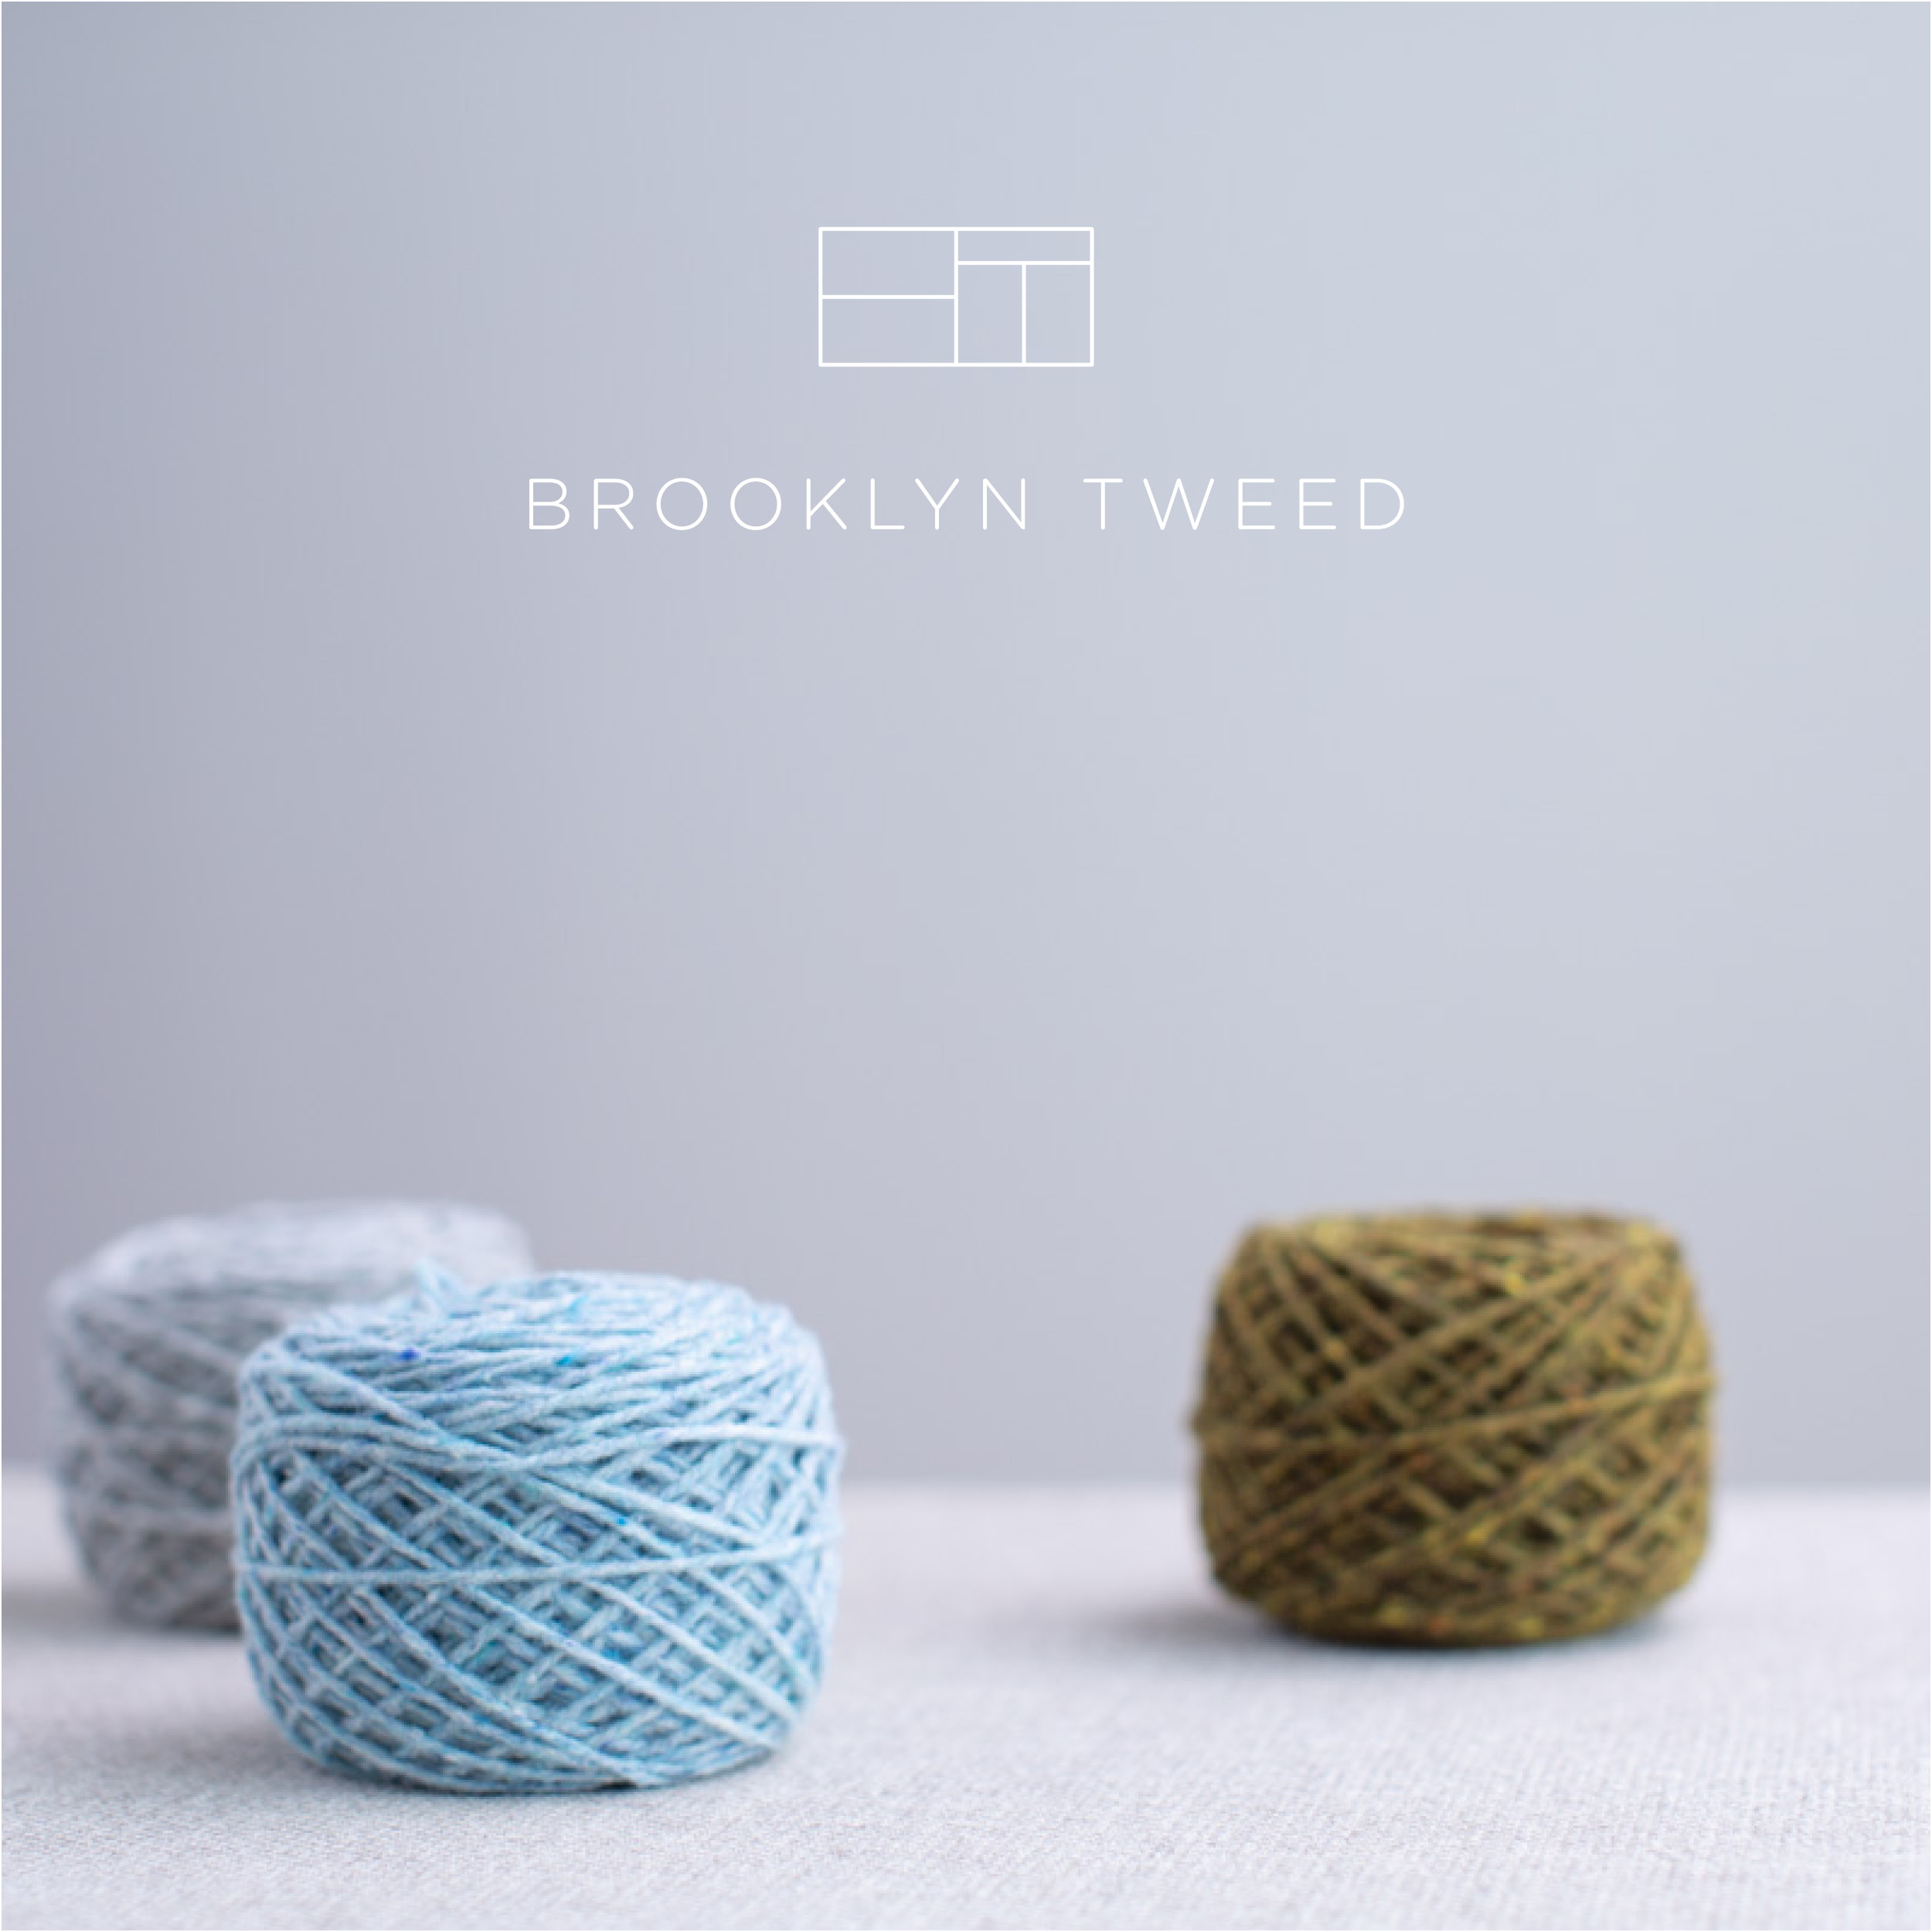 BROOKLYN TWEED  Brooklyn Tweed develops and manufactures breed-specific wool yarns that support domestic textile production in the United States — designing, sourcing, dyeing, and spinning yarns for the modern maker. Brooklyn Tweed also designs and publishes knitwear patterns that meld handknitting traditions with contemporary style, giving makers the inspiration and resources to create garments and accessories that are pleasurable to knit and wear.